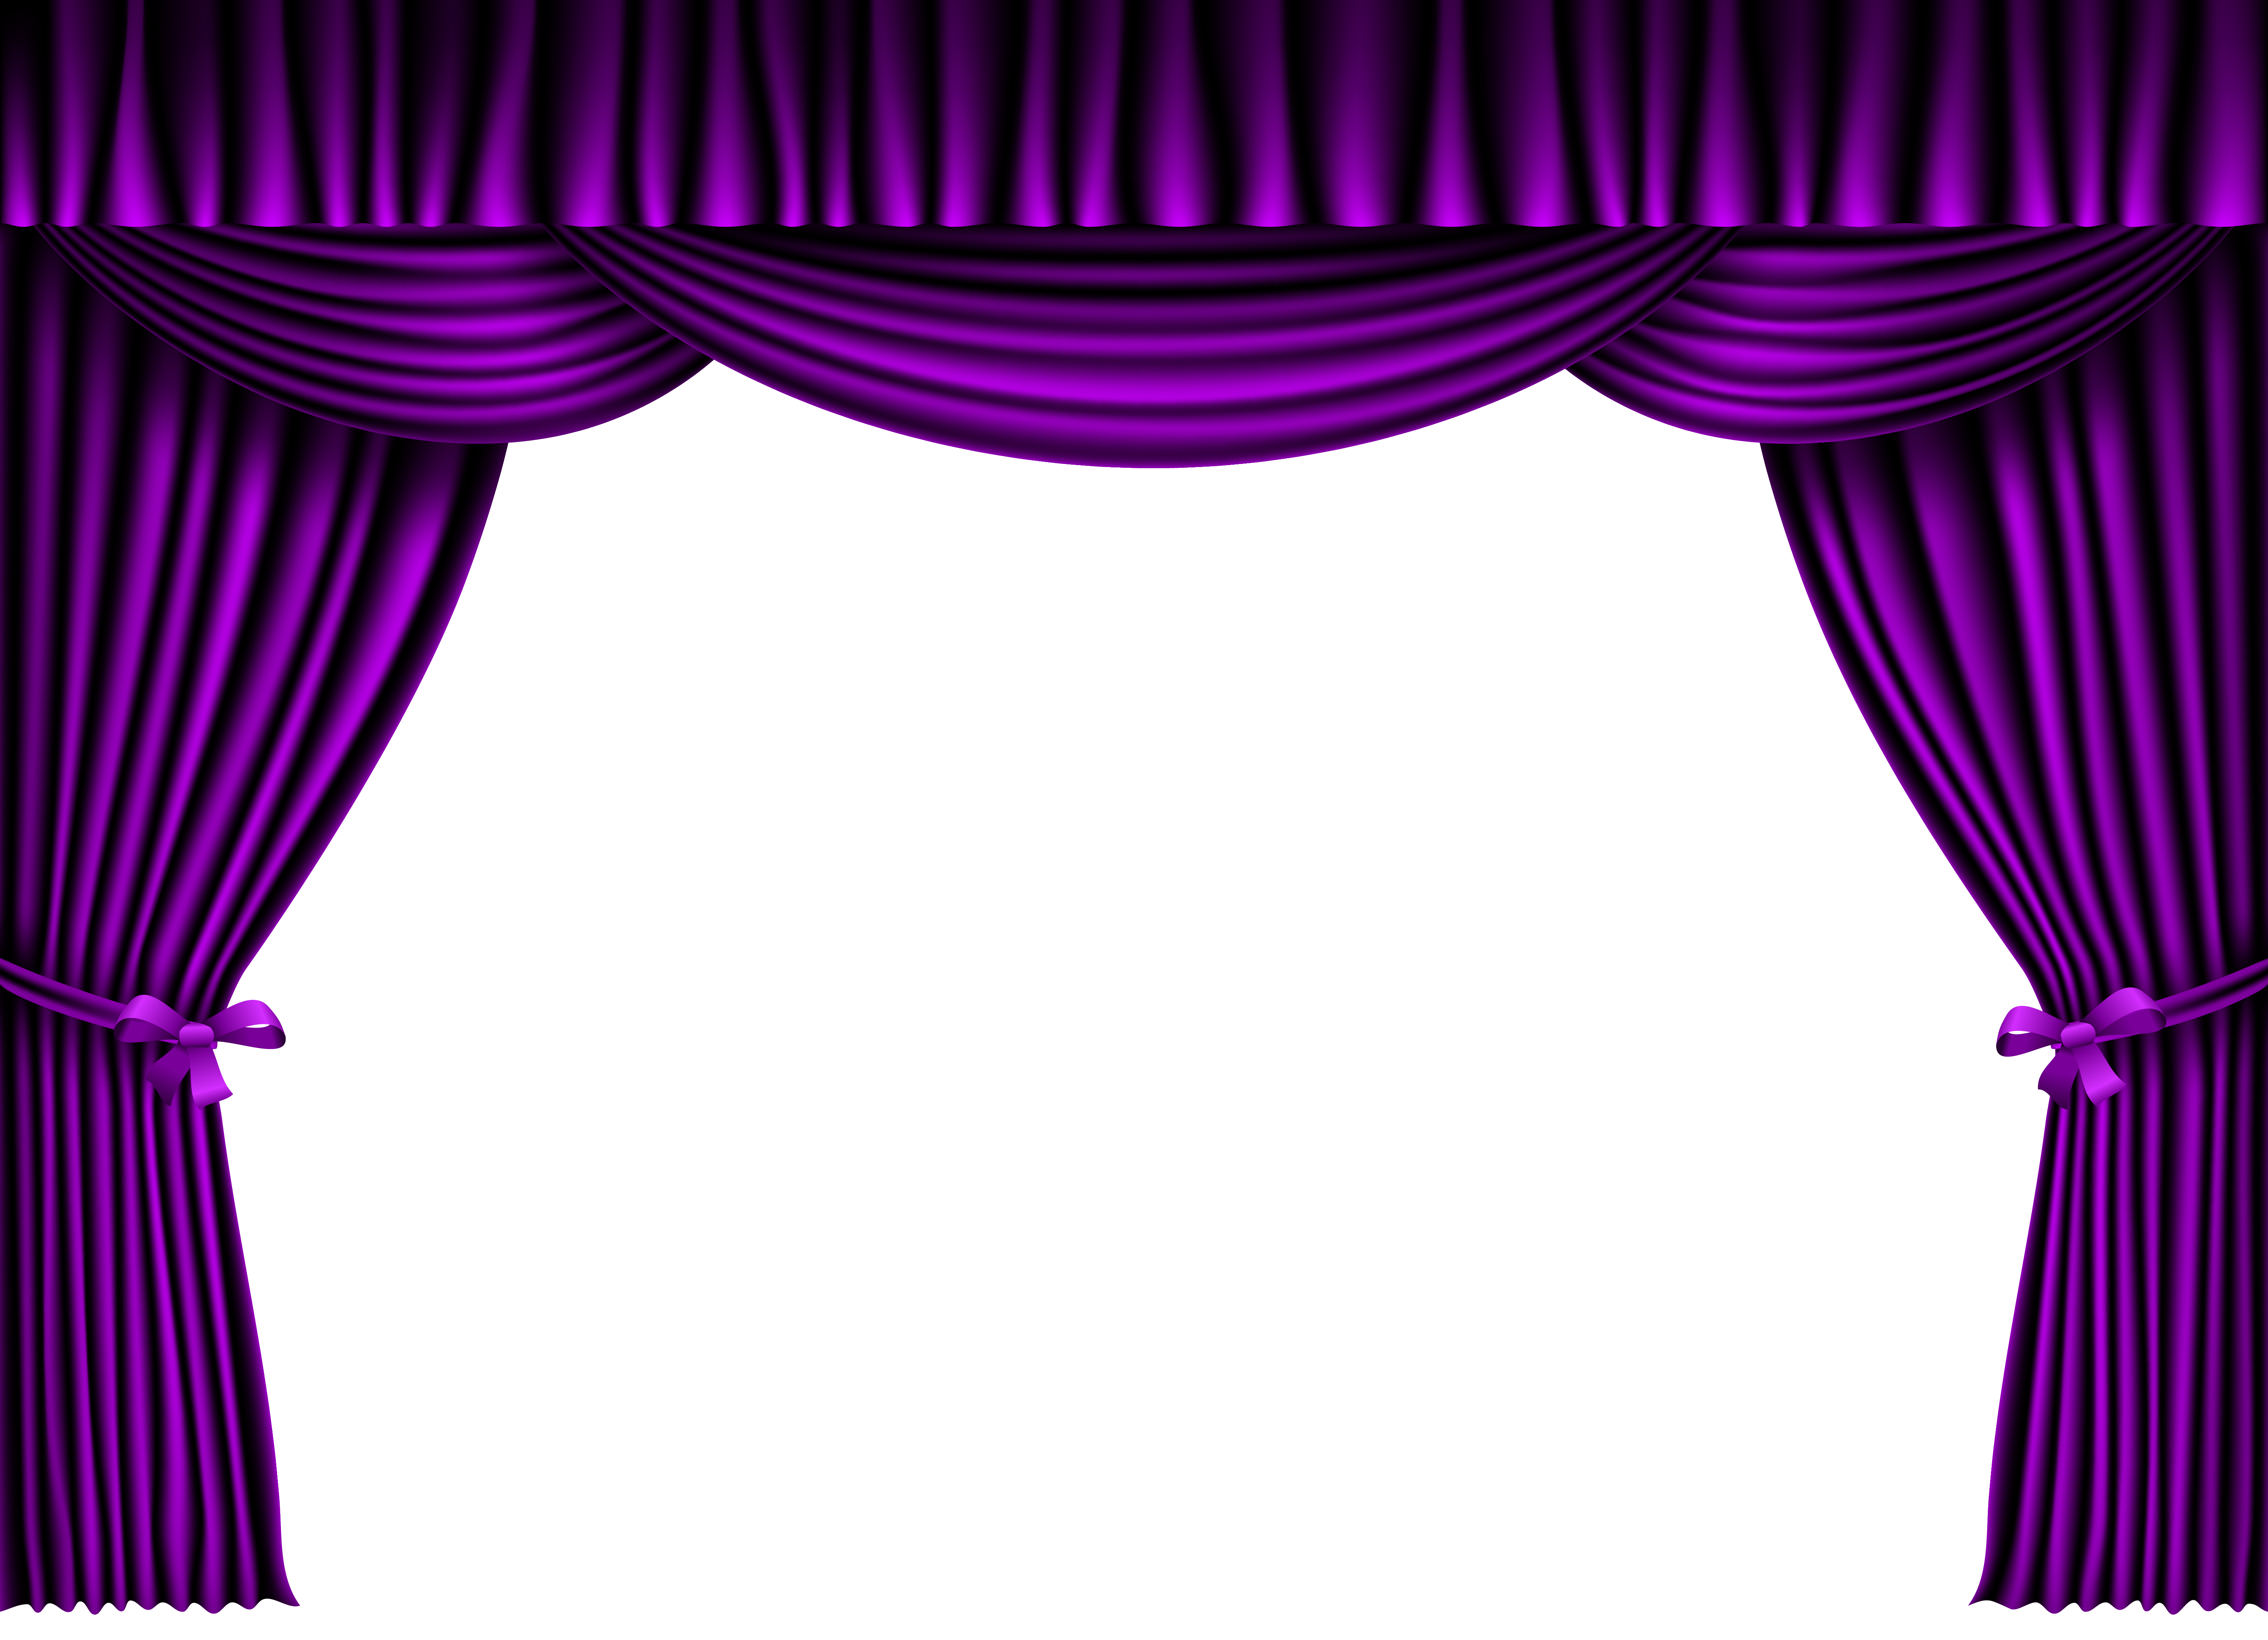 Purple Curtain PNG Clipart Image.